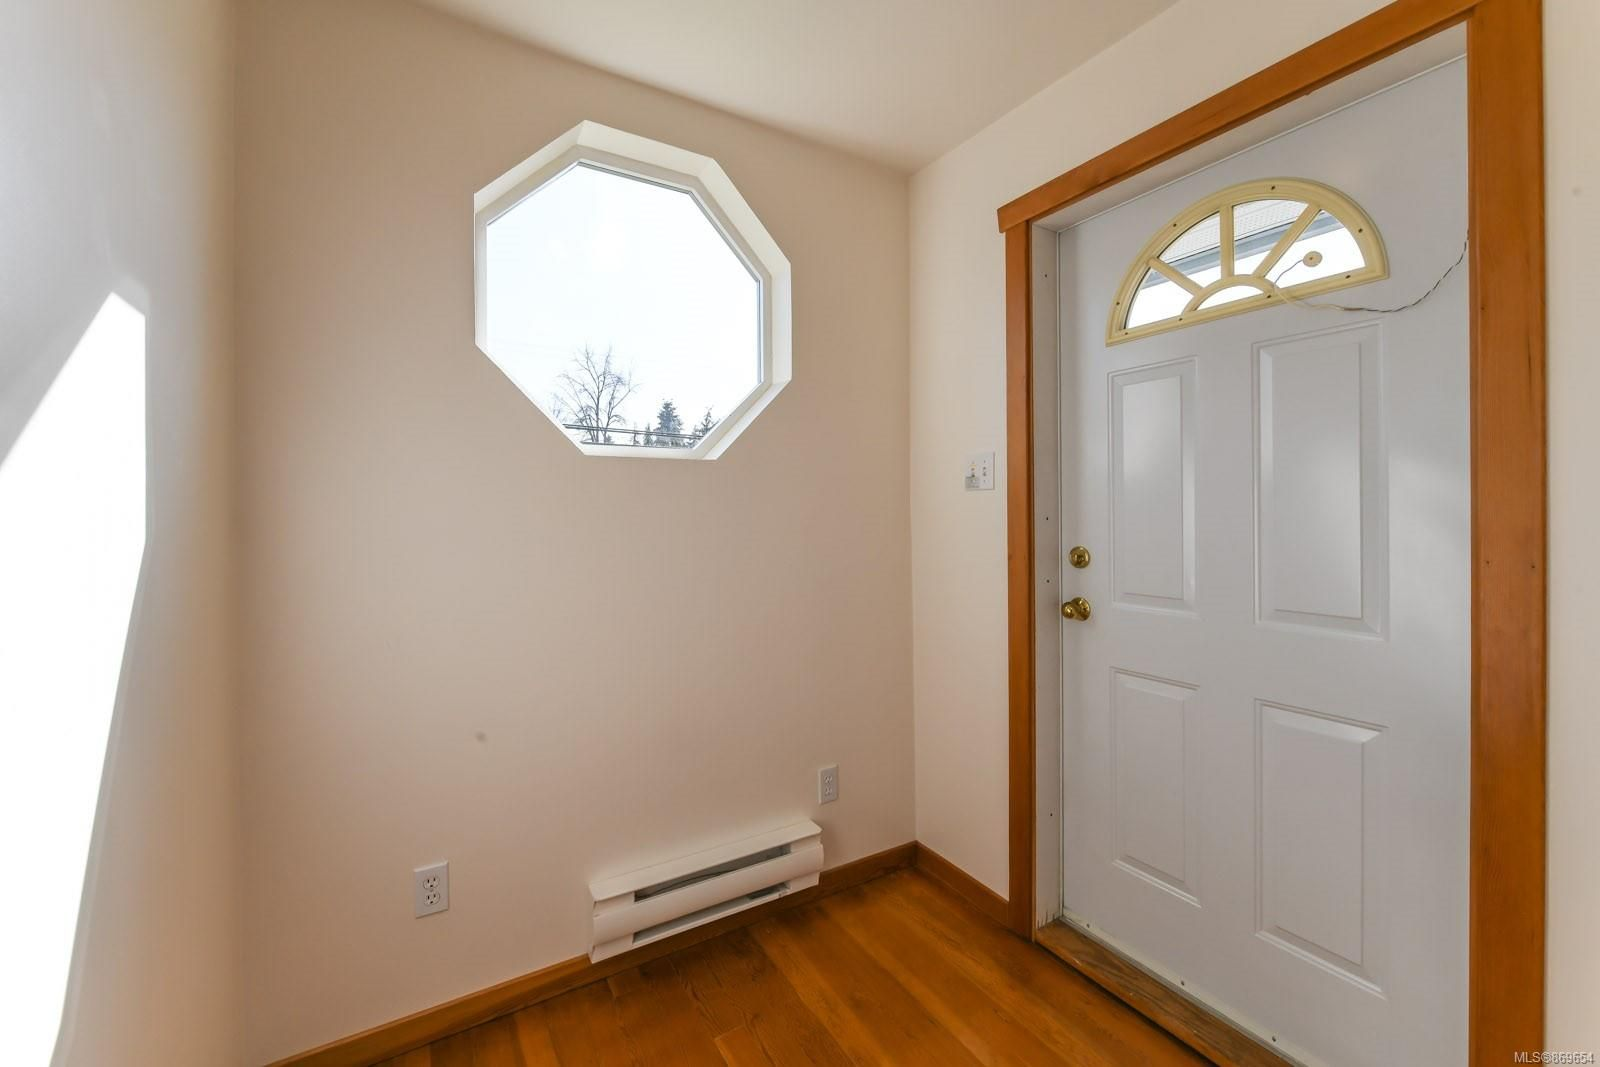 Photo 4: Photos: 4712 Cumberland Rd in : CV Cumberland House for sale (Comox Valley)  : MLS®# 869654